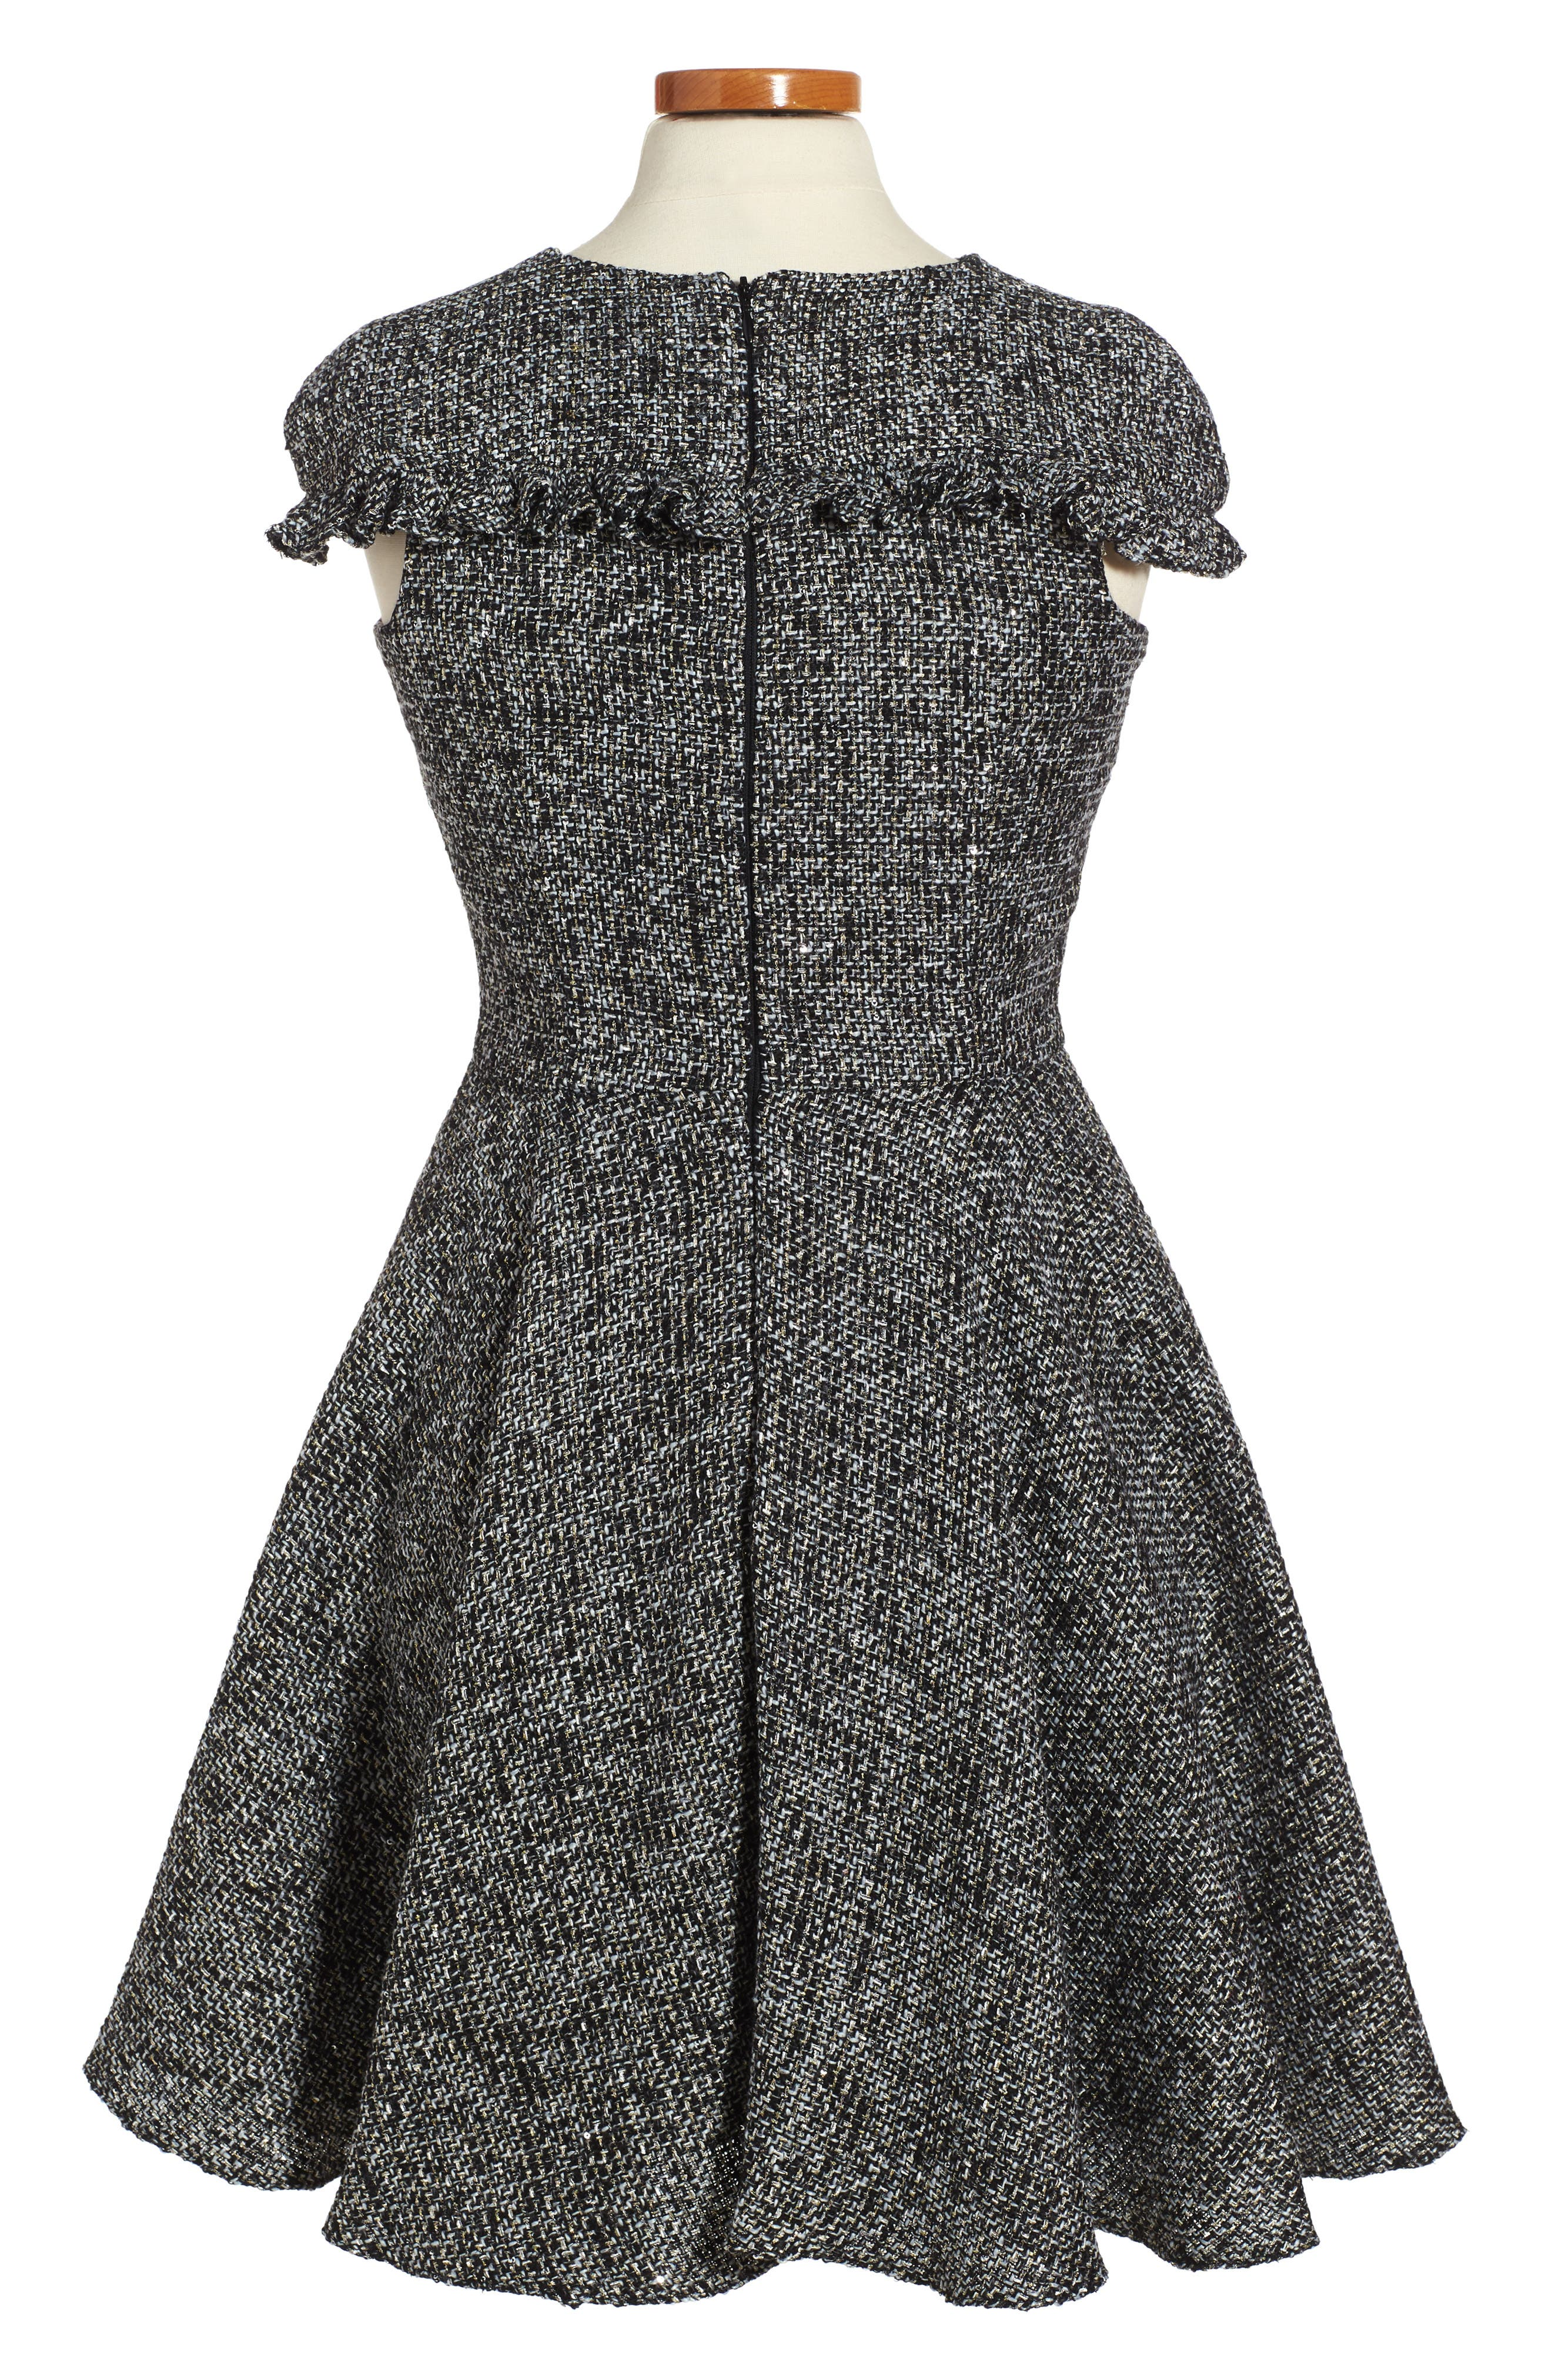 Sequin Tweed Dress,                             Alternate thumbnail 3, color,                             Black